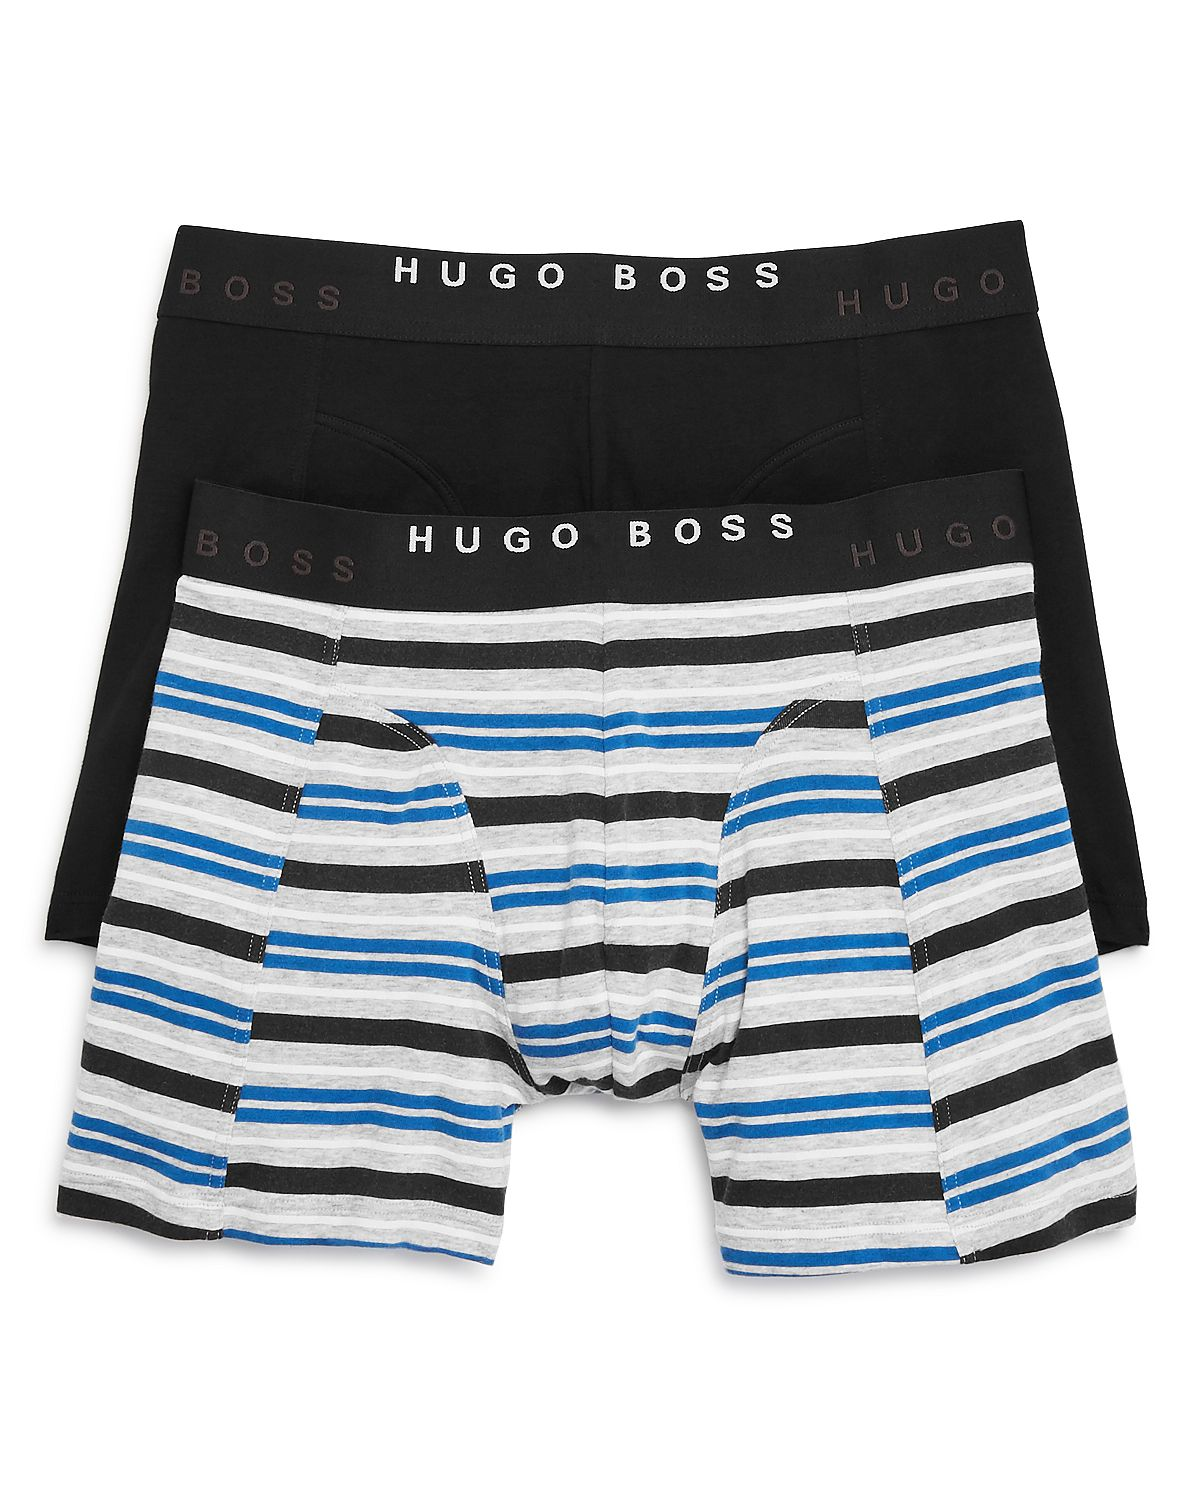 Boss Boxer Briefs Pack Of 2